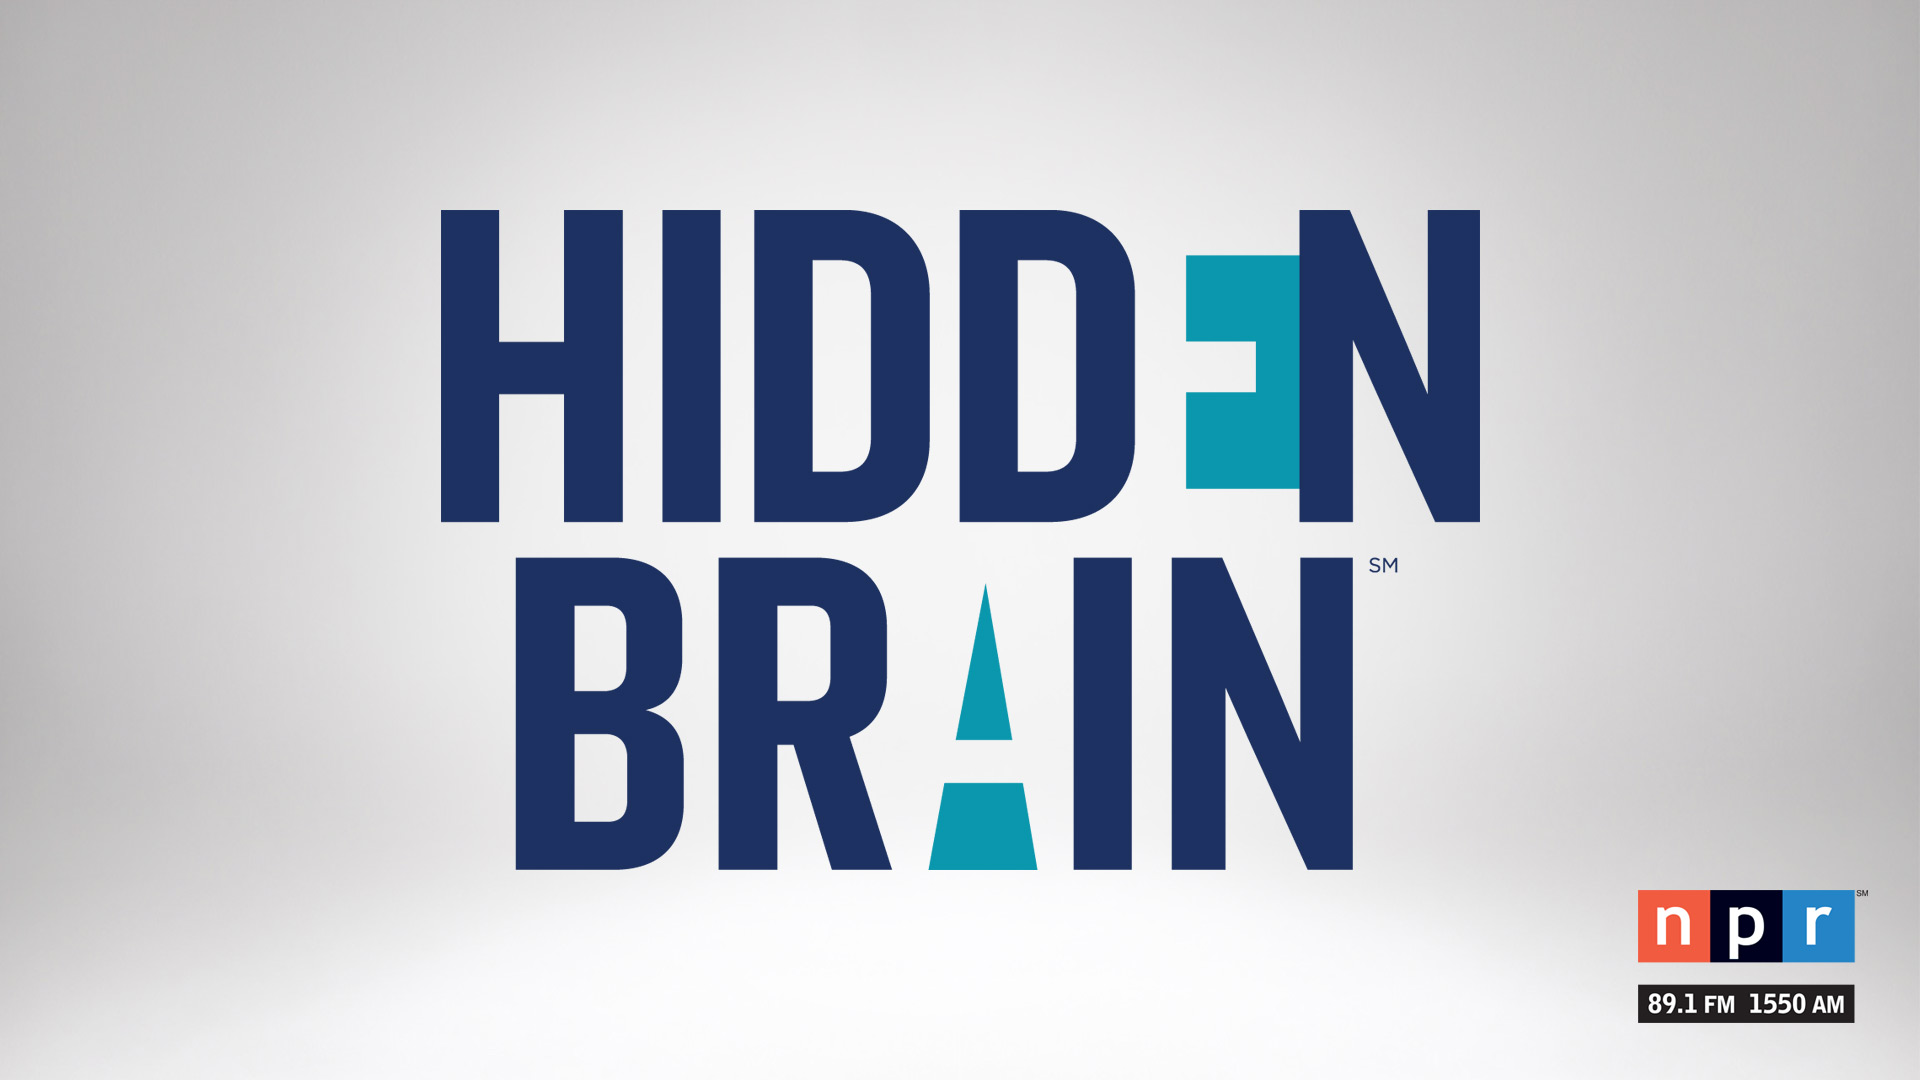 Hidden Brain hero